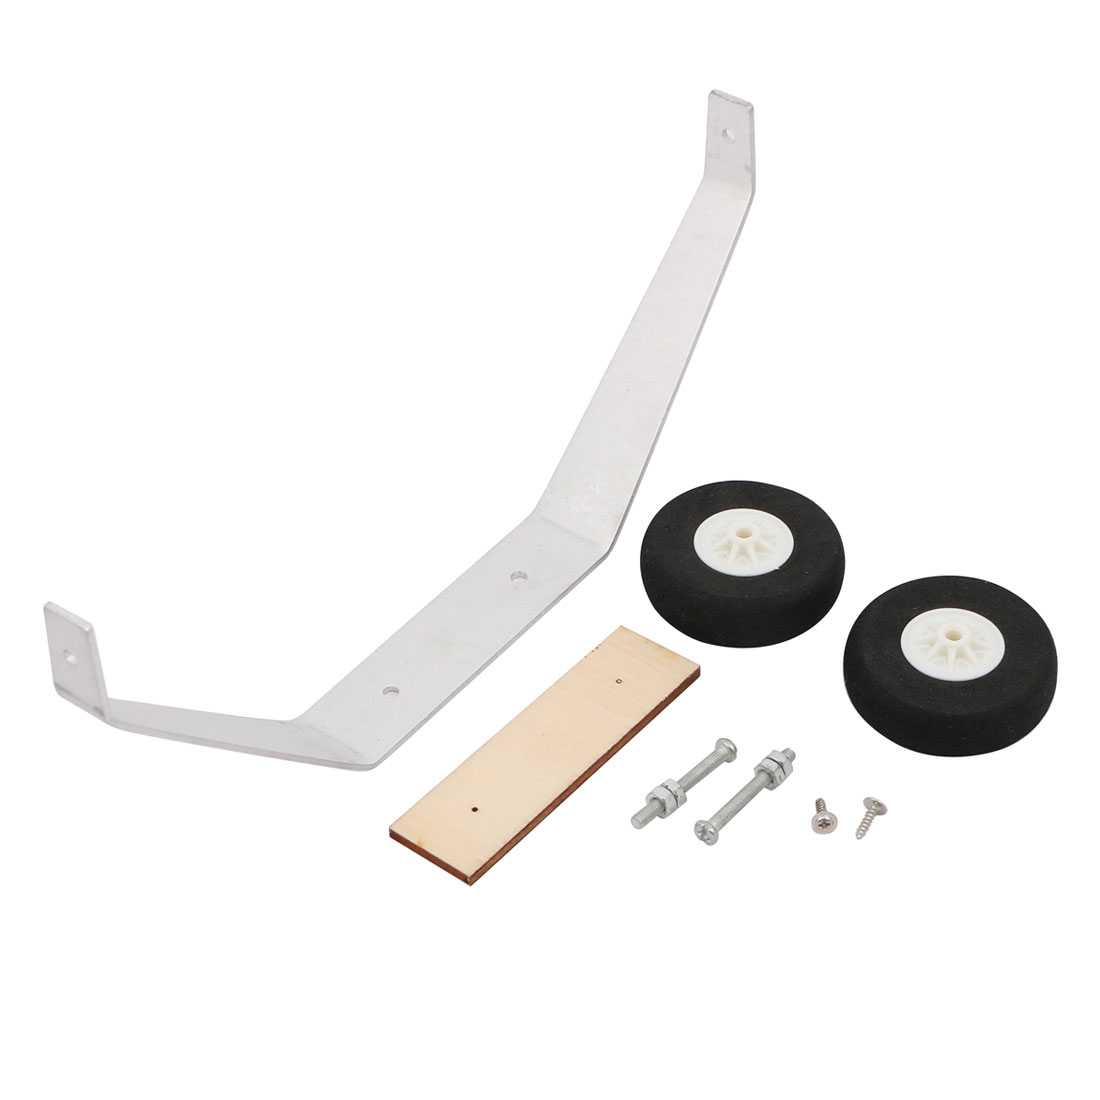 Set 40mm Dia Steerable Tailwheel Assembly Kit Bracket for RC Airplane